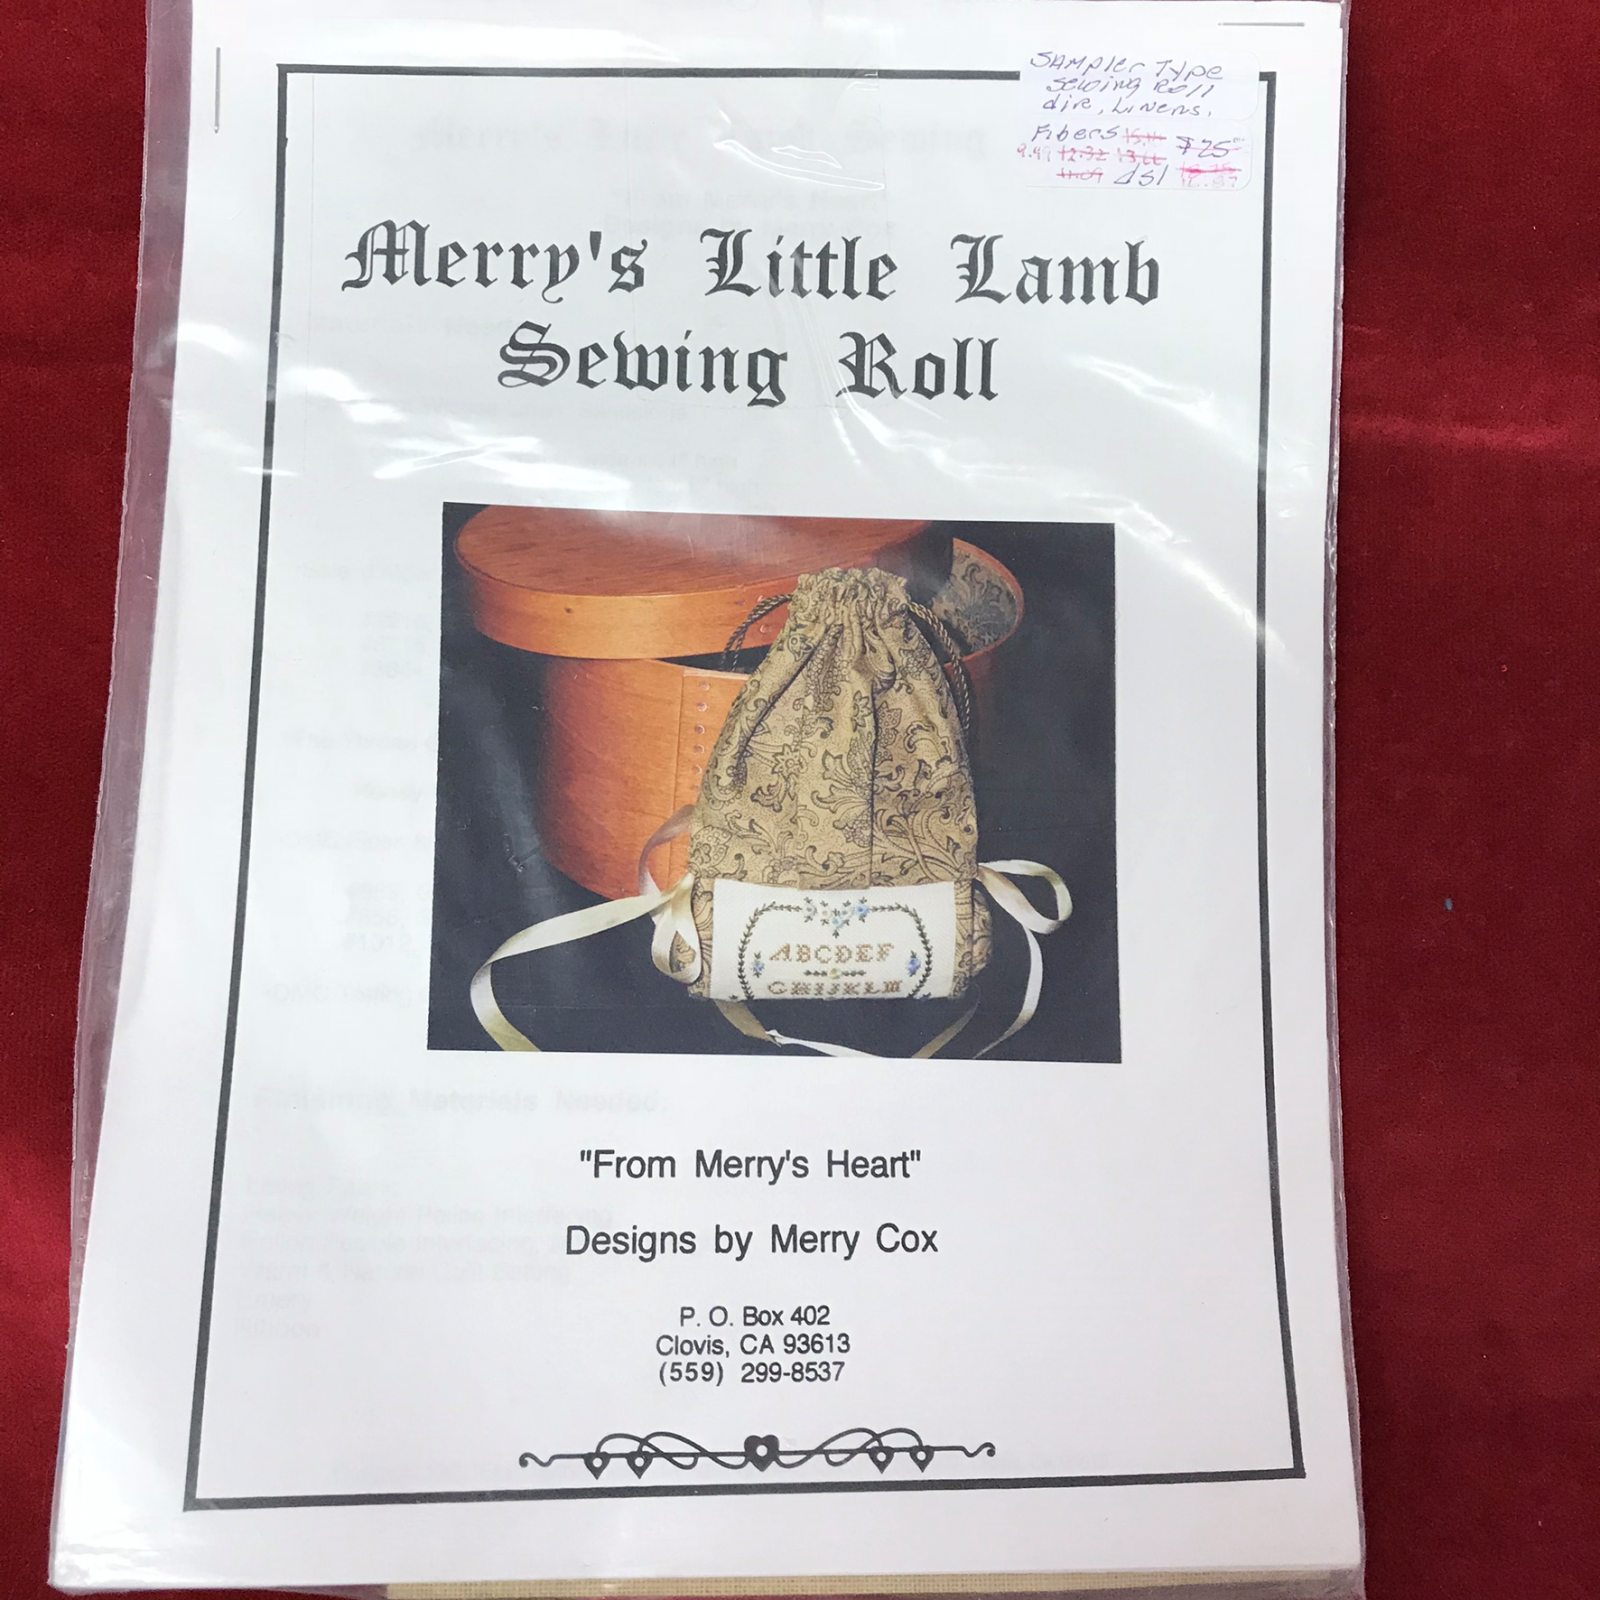 MERRY'S LITTLE LAMB SEWING ROLL